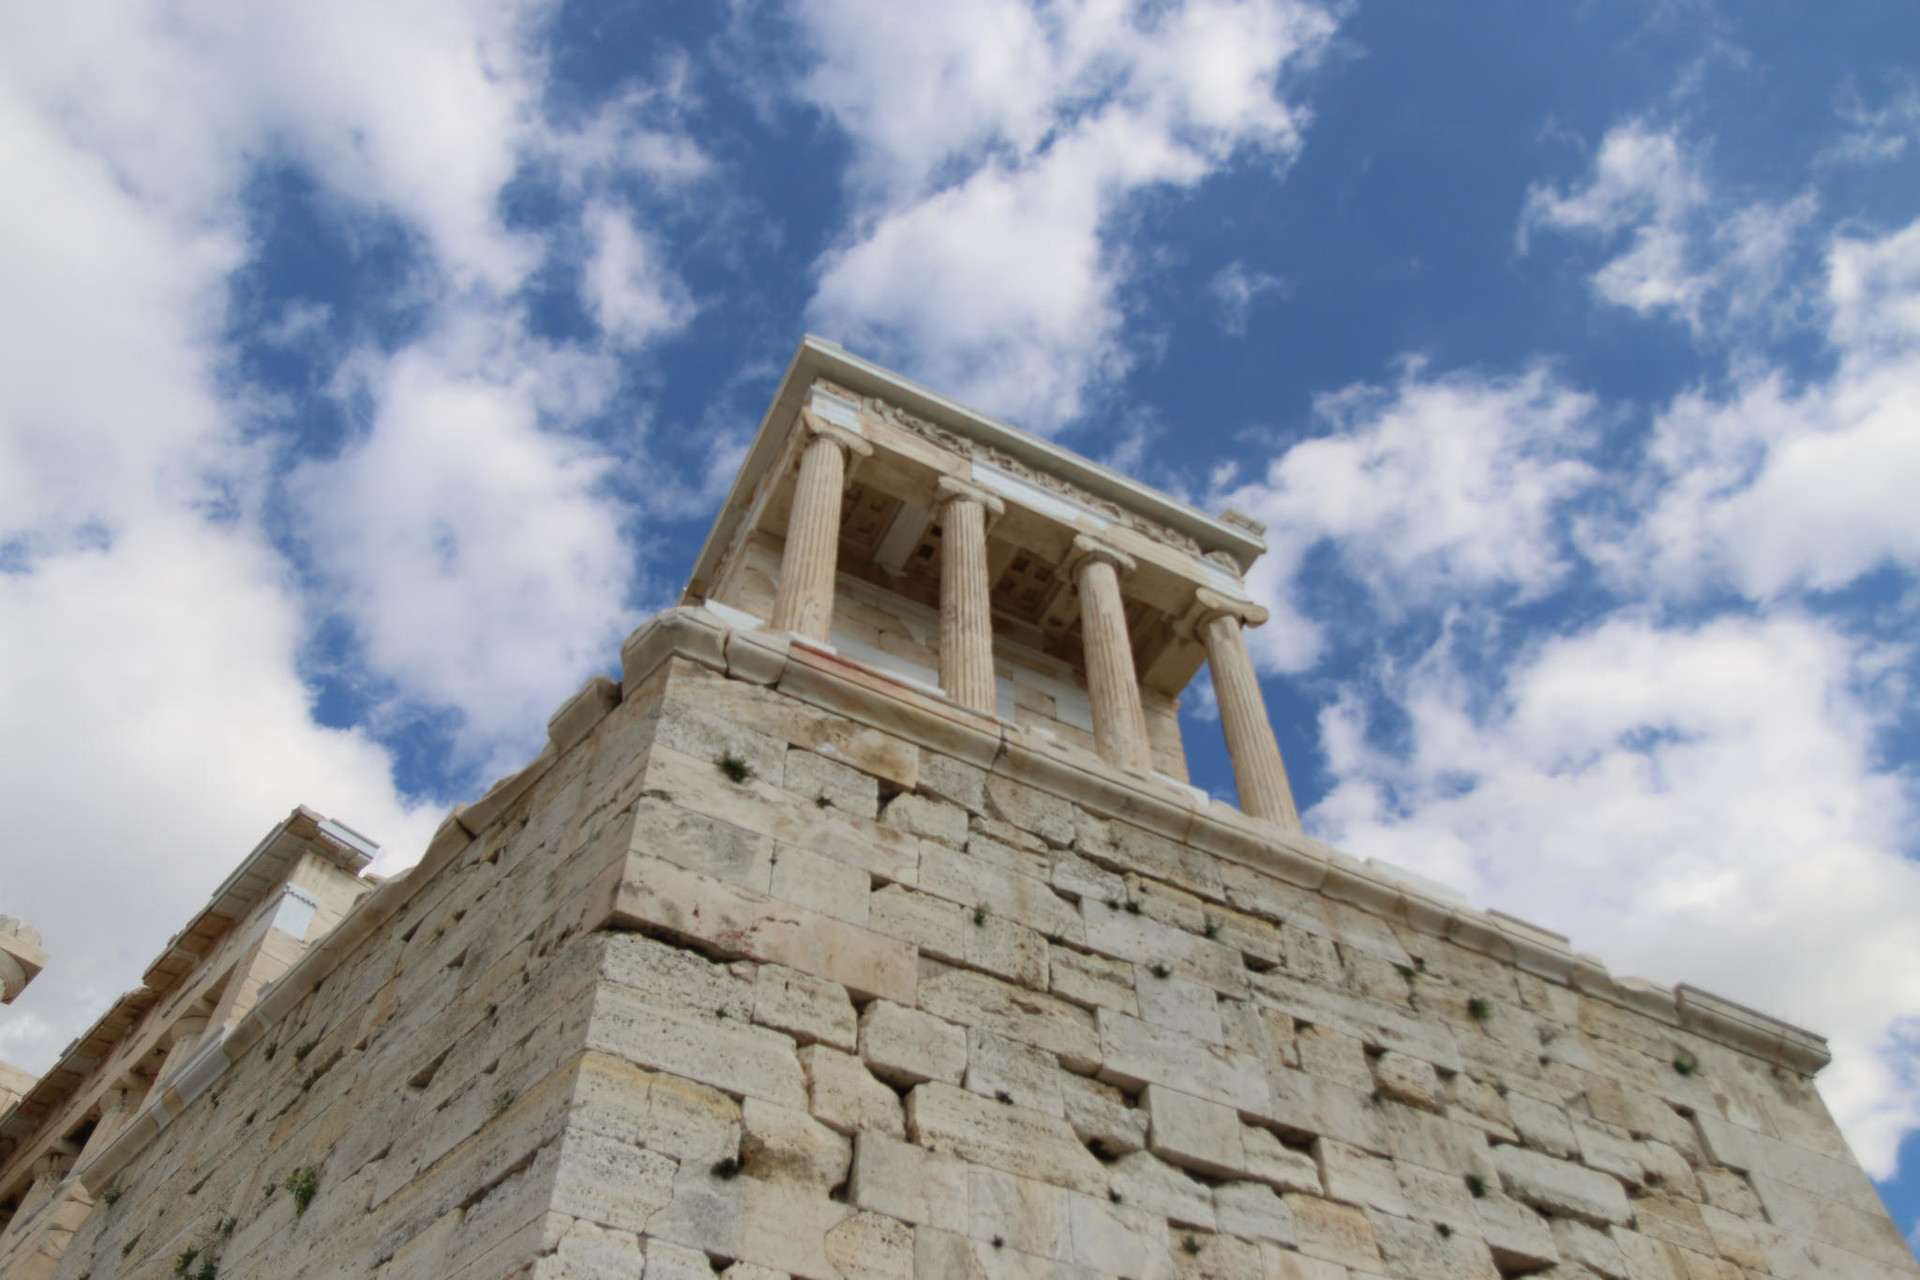 athens-travel-tips-78f11df5b6d7c04569a12